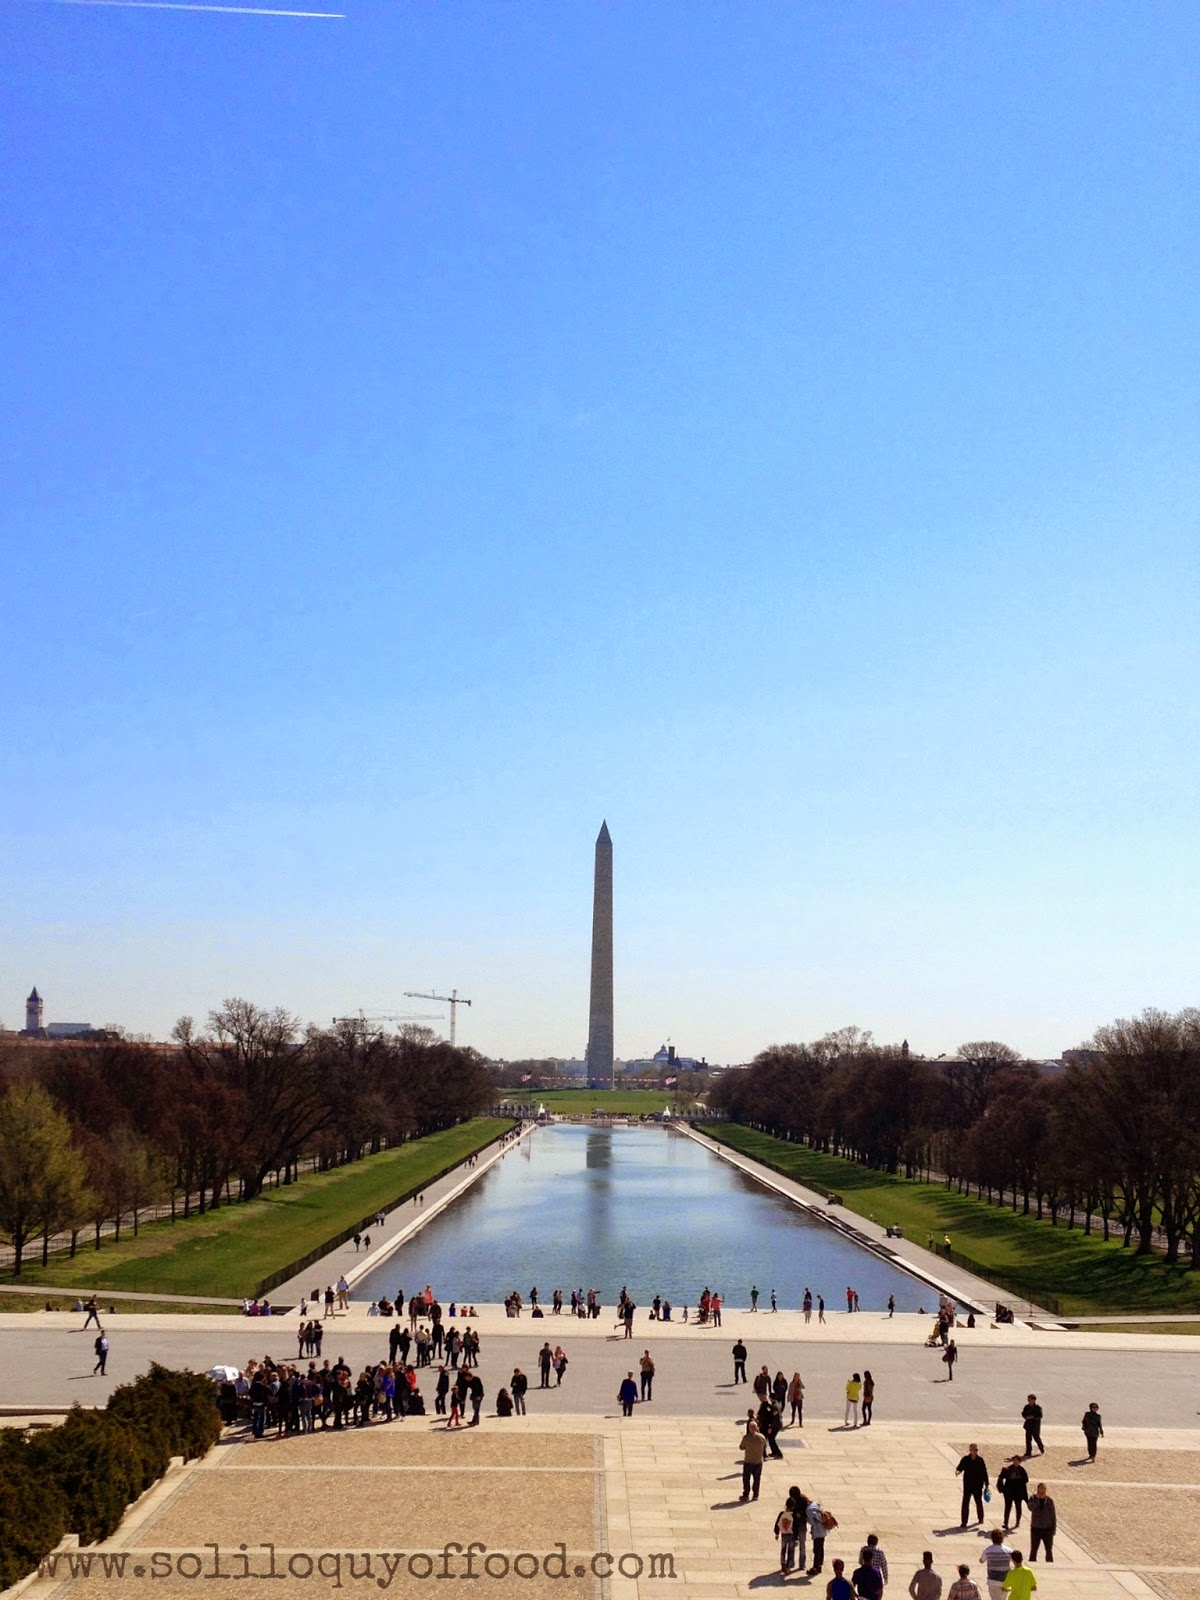 Lincoln's View Of The Reflecting Pool - Cherry Blossoms 2014 - www.soliloquyoffood.com